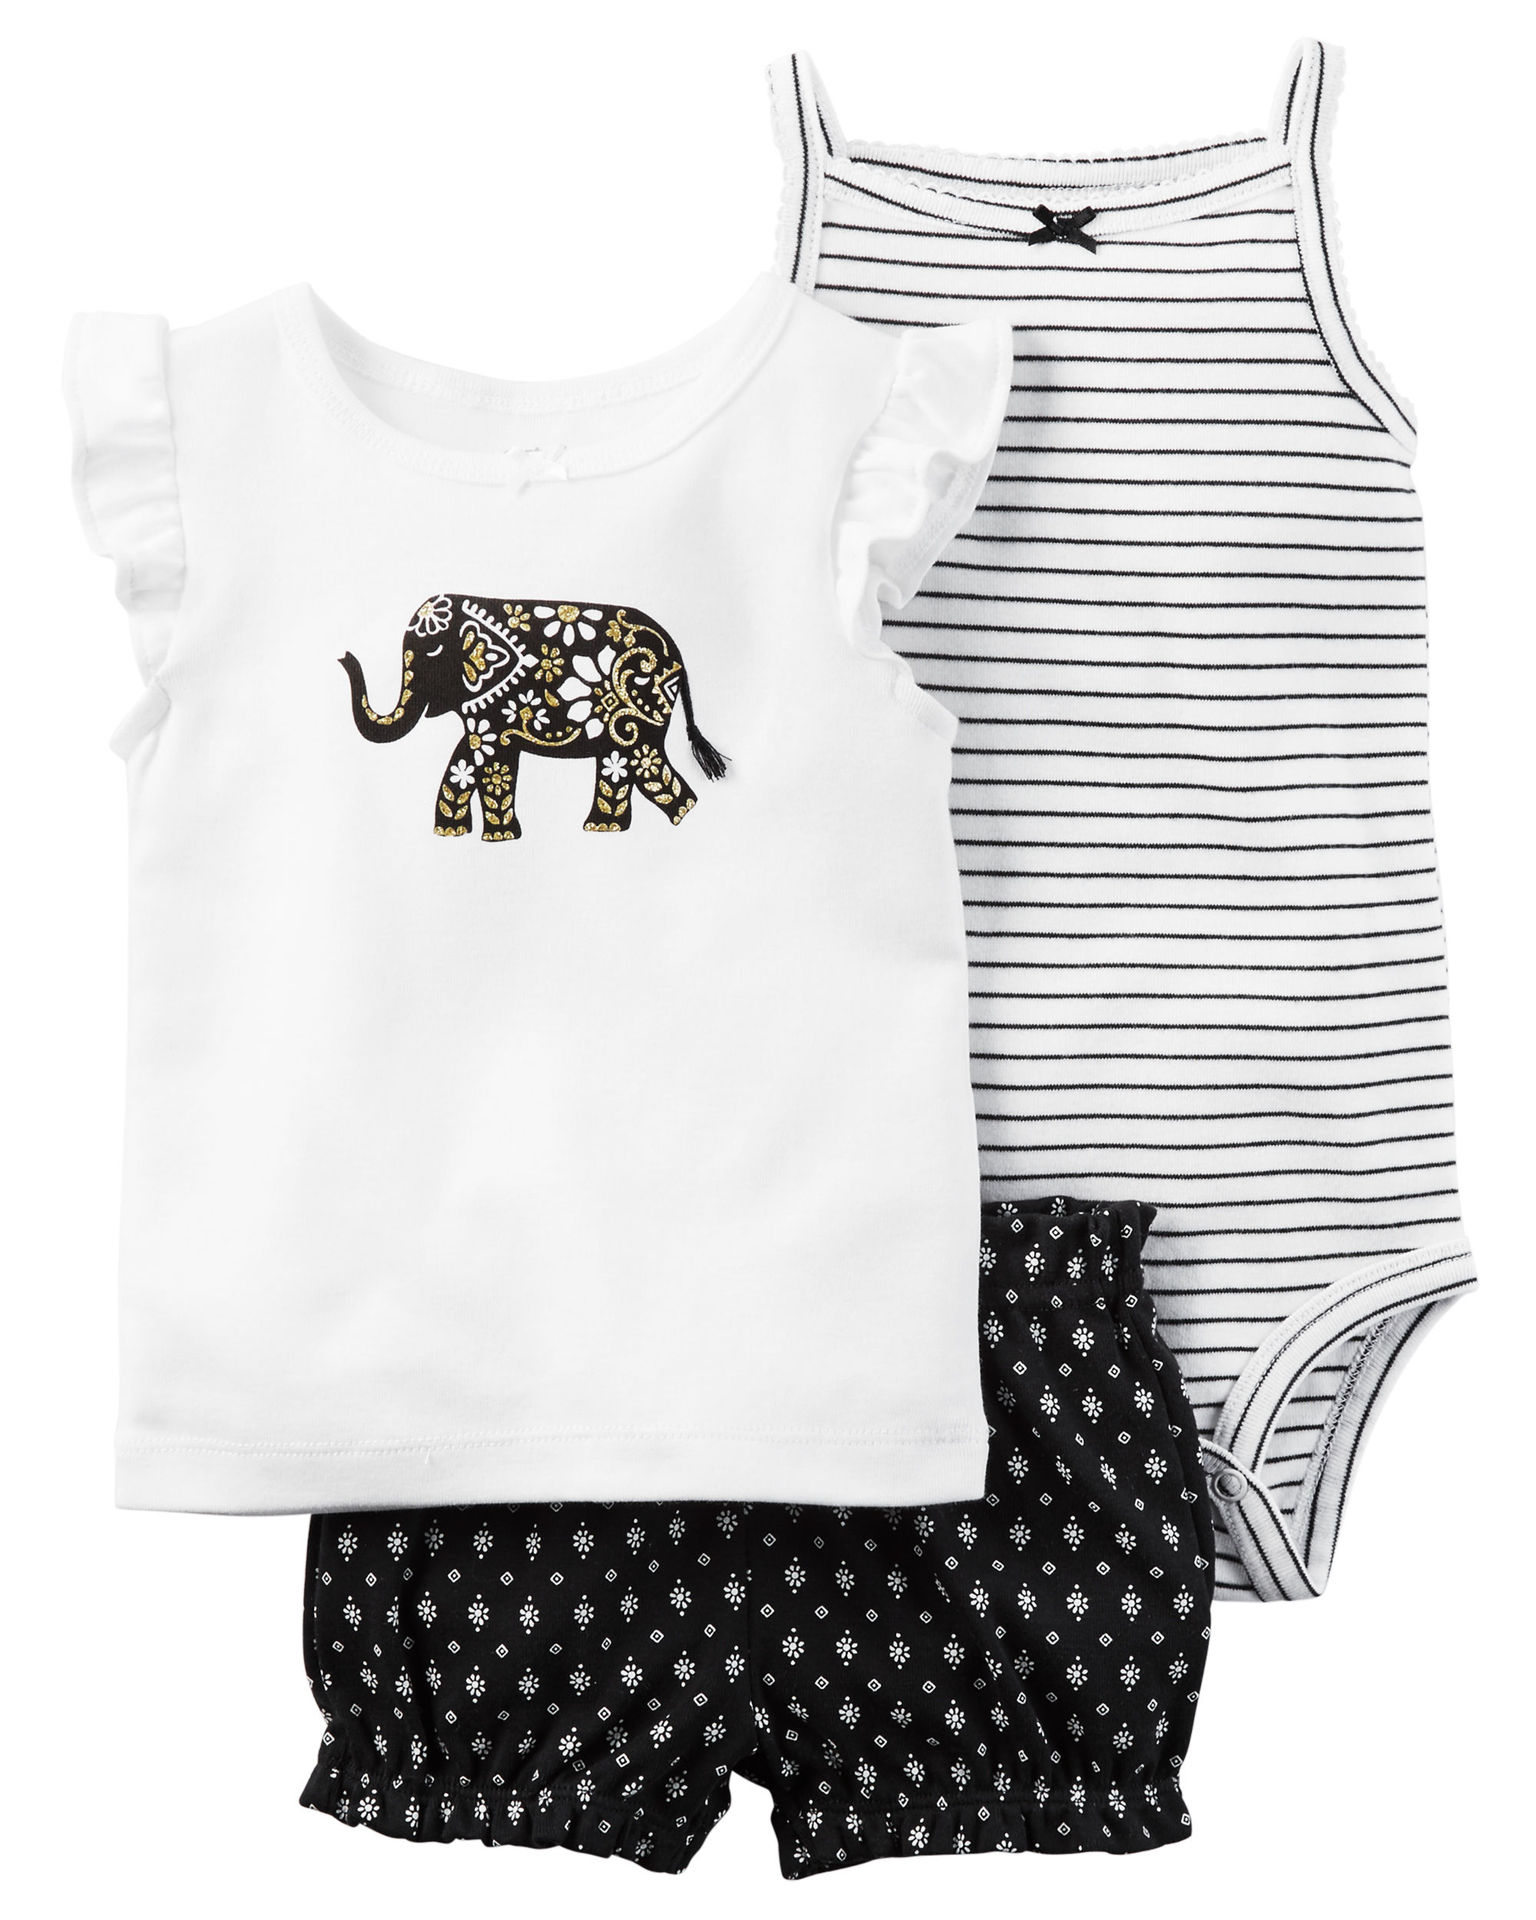 bodie for children Overalls For Newborn Baby Clothes Summer Cotton Baby Bodysuit 3pcs Set Bodysuit T Shirt Underpants Baby in Overalls from Mother Kids